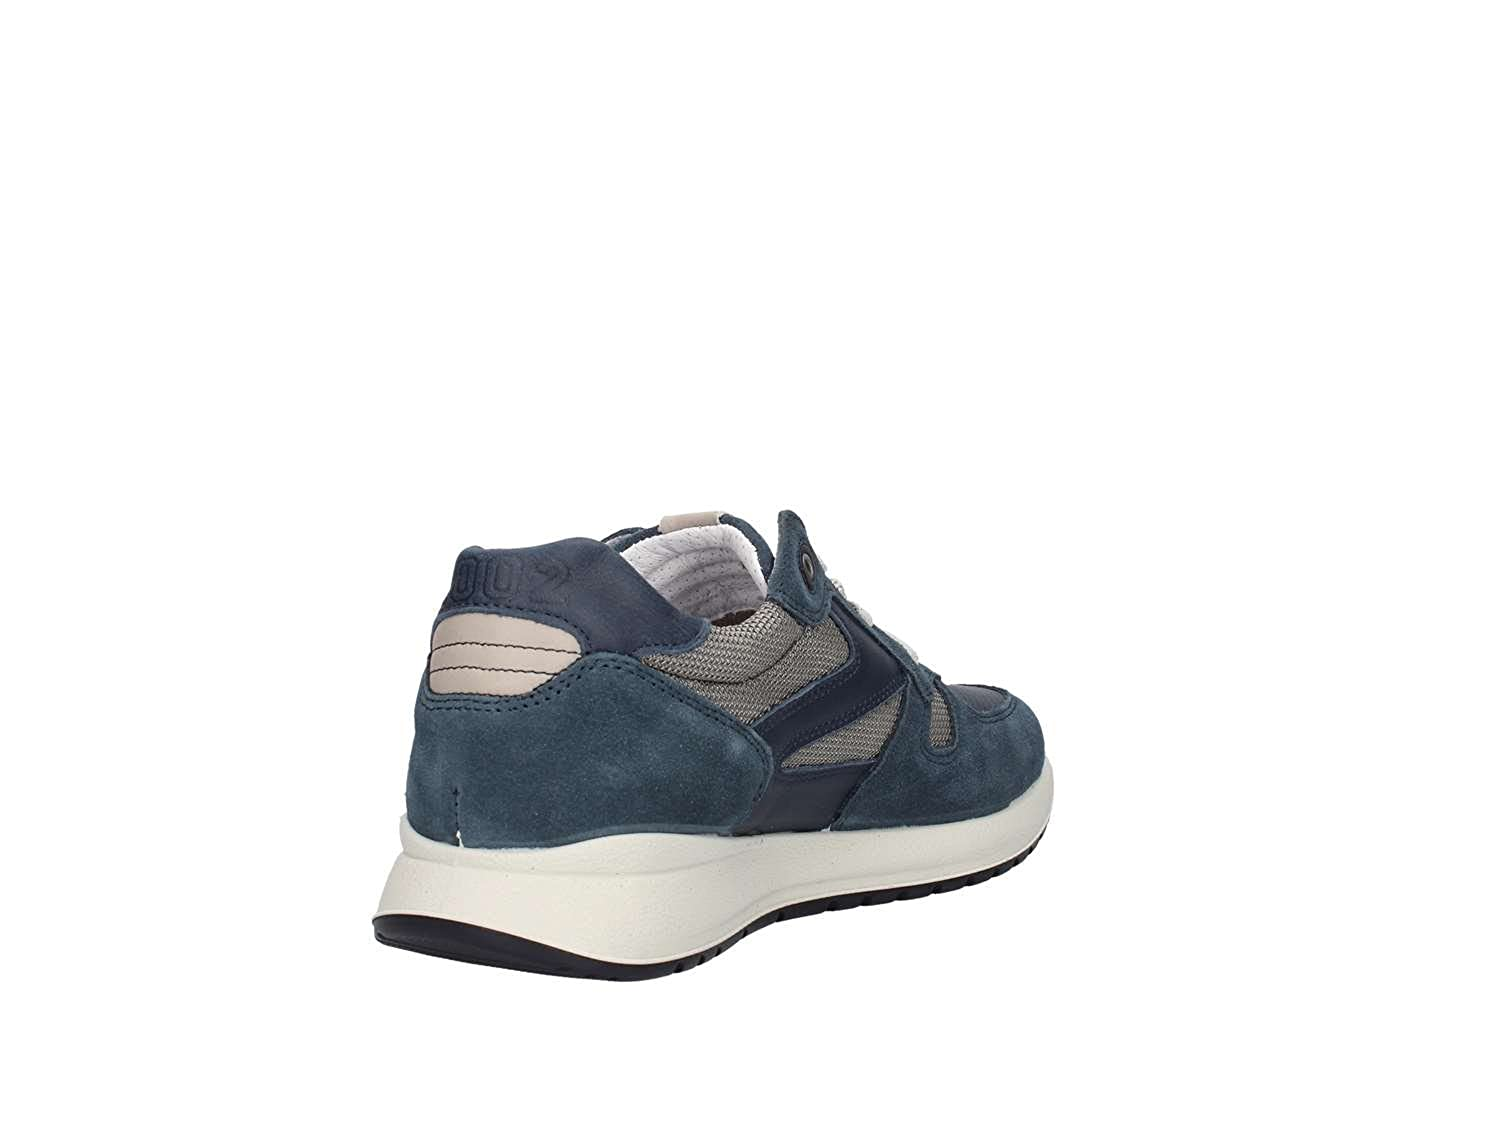 IGI&CO 1120200 Sneakers Uomo: Amazon.it: Scarpe e borse